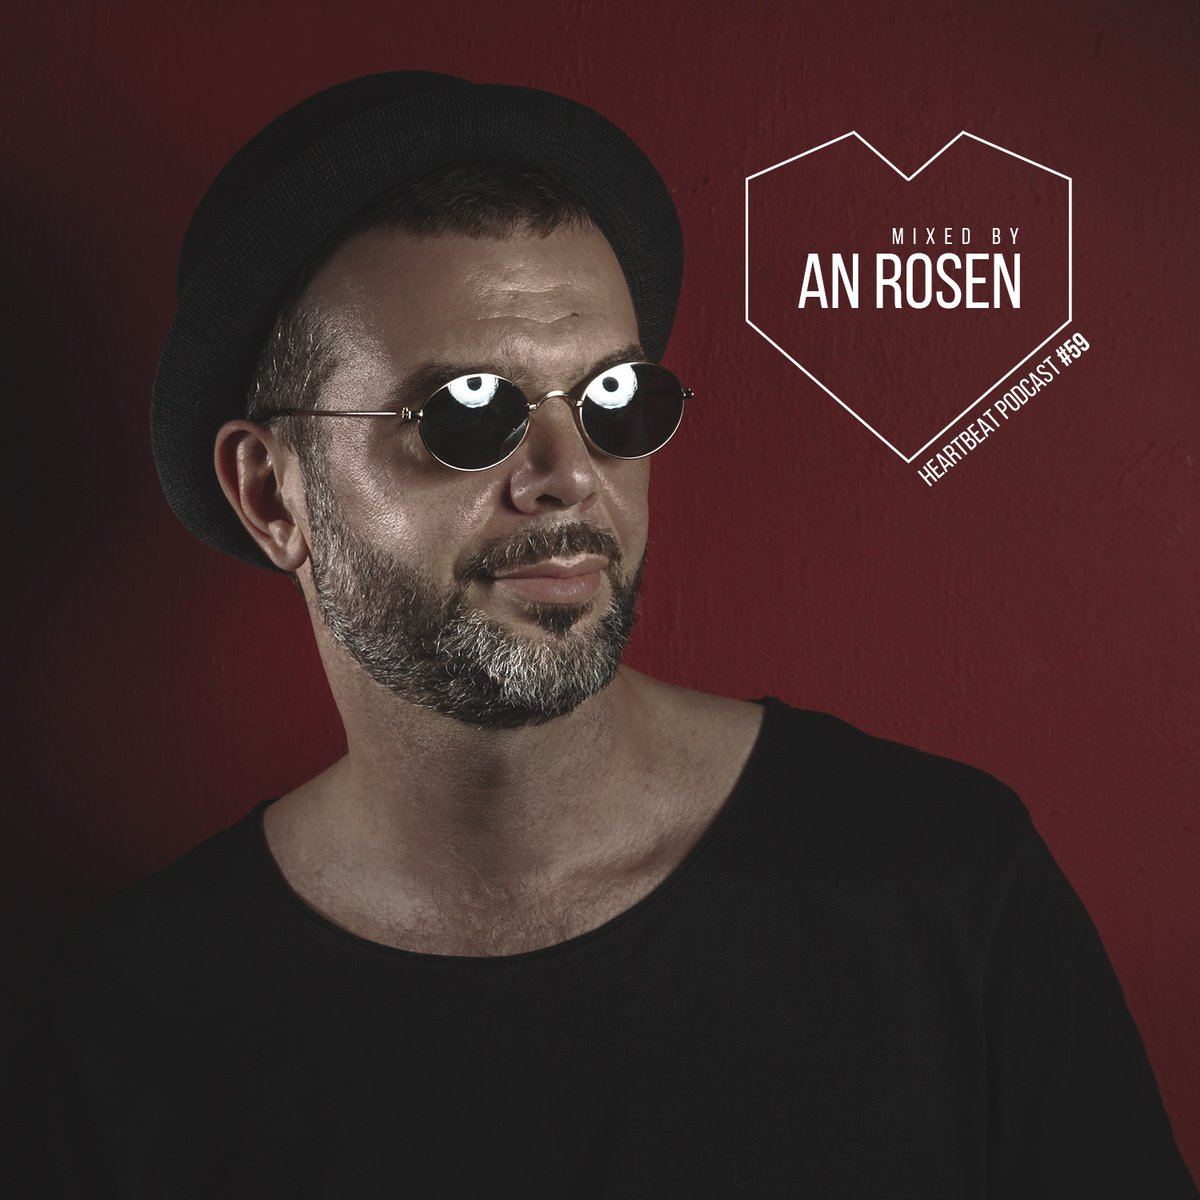 Meet the new episode of Heartbeat Podcast with the guest set from An Rosen   ► Listen & Tracklist: https://fanlink.to/hbpodcast   #heartbeatradio #heartbeatpodcast #housemusic #wearehouse #anrosen #weplayhouse #techhouse pic.twitter.com/qMZBCFOCCV